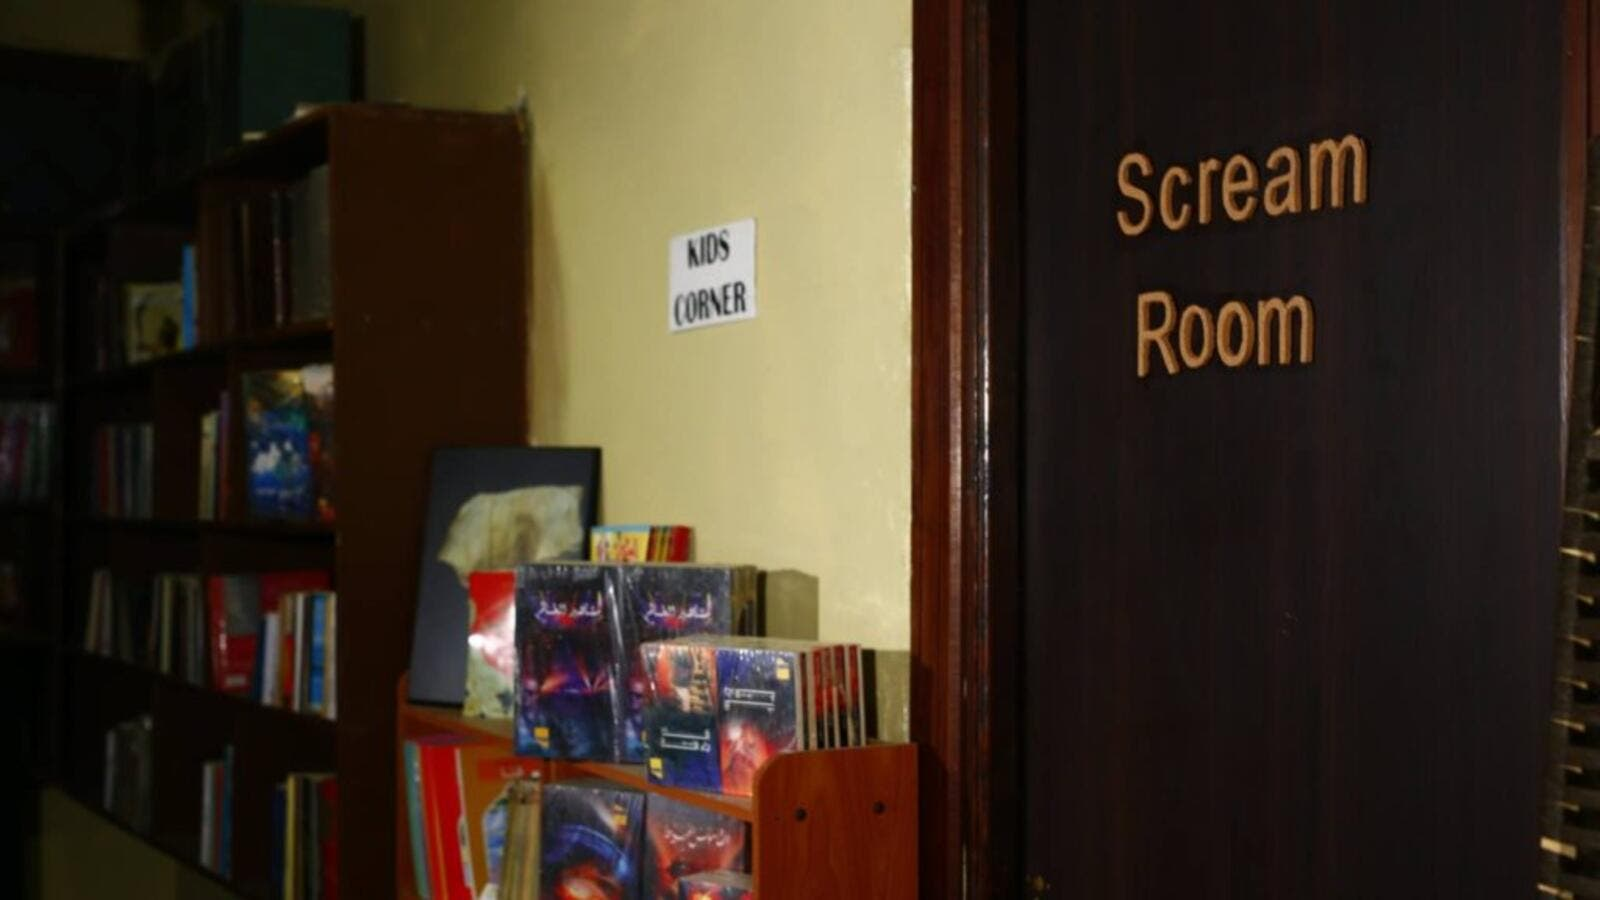 The Scream Room, just next to the kids' corner in Bab Aldonia and 6th of October City. (Bab Aldonia)